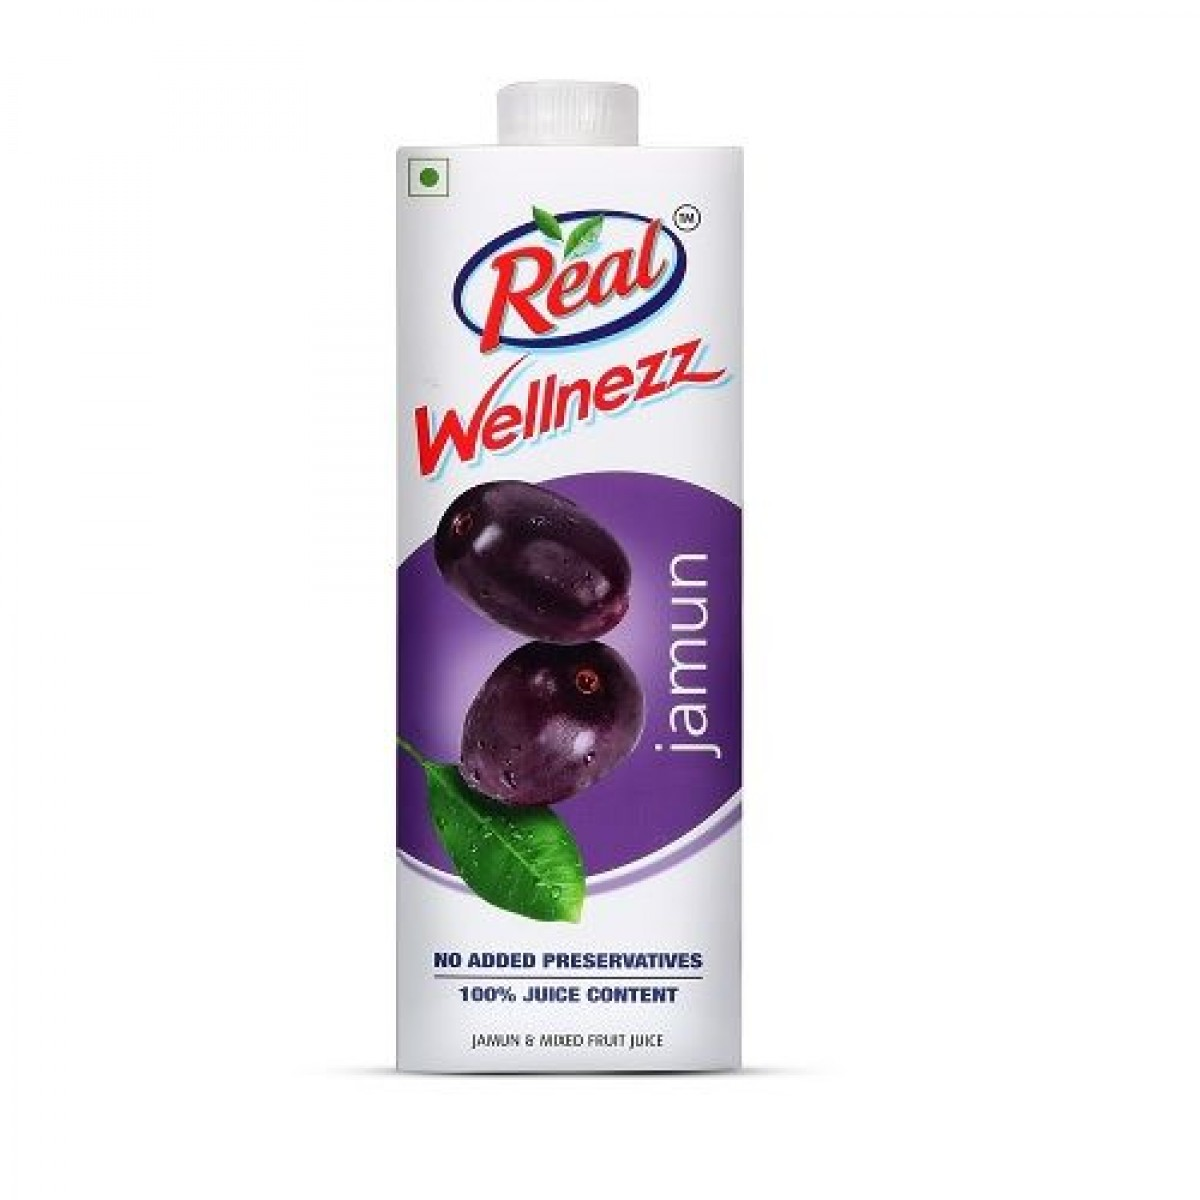 Dabur introduces Réal Wellnezz